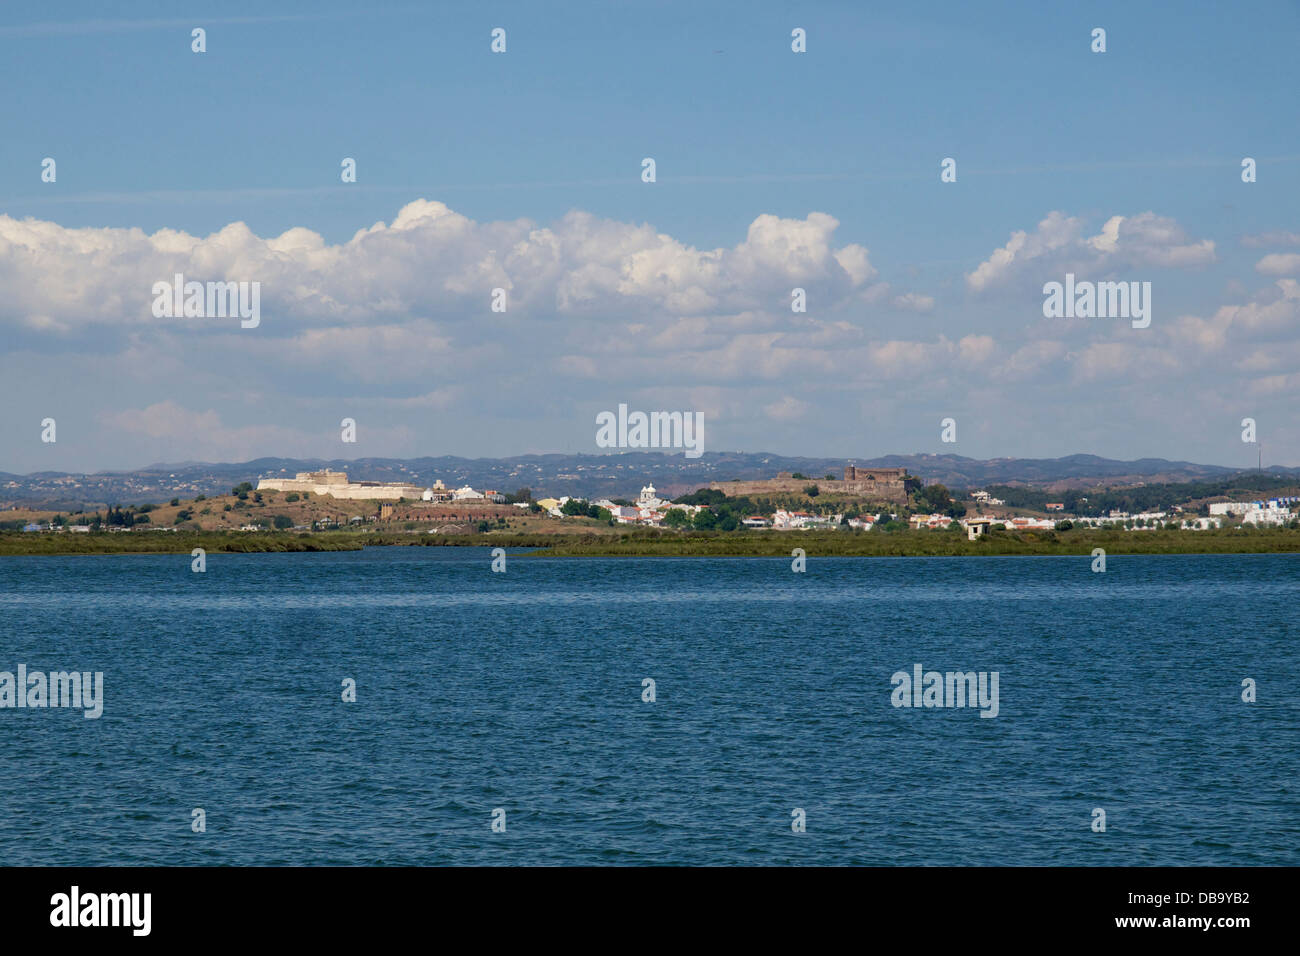 The town of Castro Marim in southern Portugal seen from the Rio Guadiana river which is the border with Spain. - Stock Image